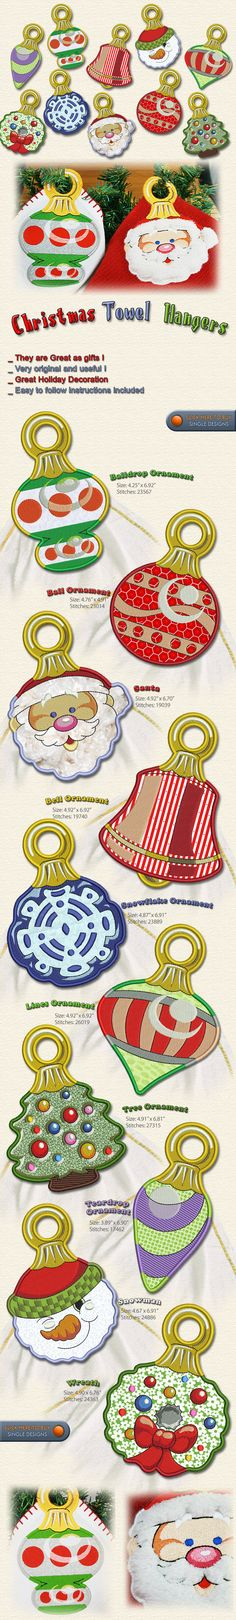 CHRISTMAS ORNAMENTS TOWEL HANGERS Embroidery Designs Free Embroidery Design Patterns Applique